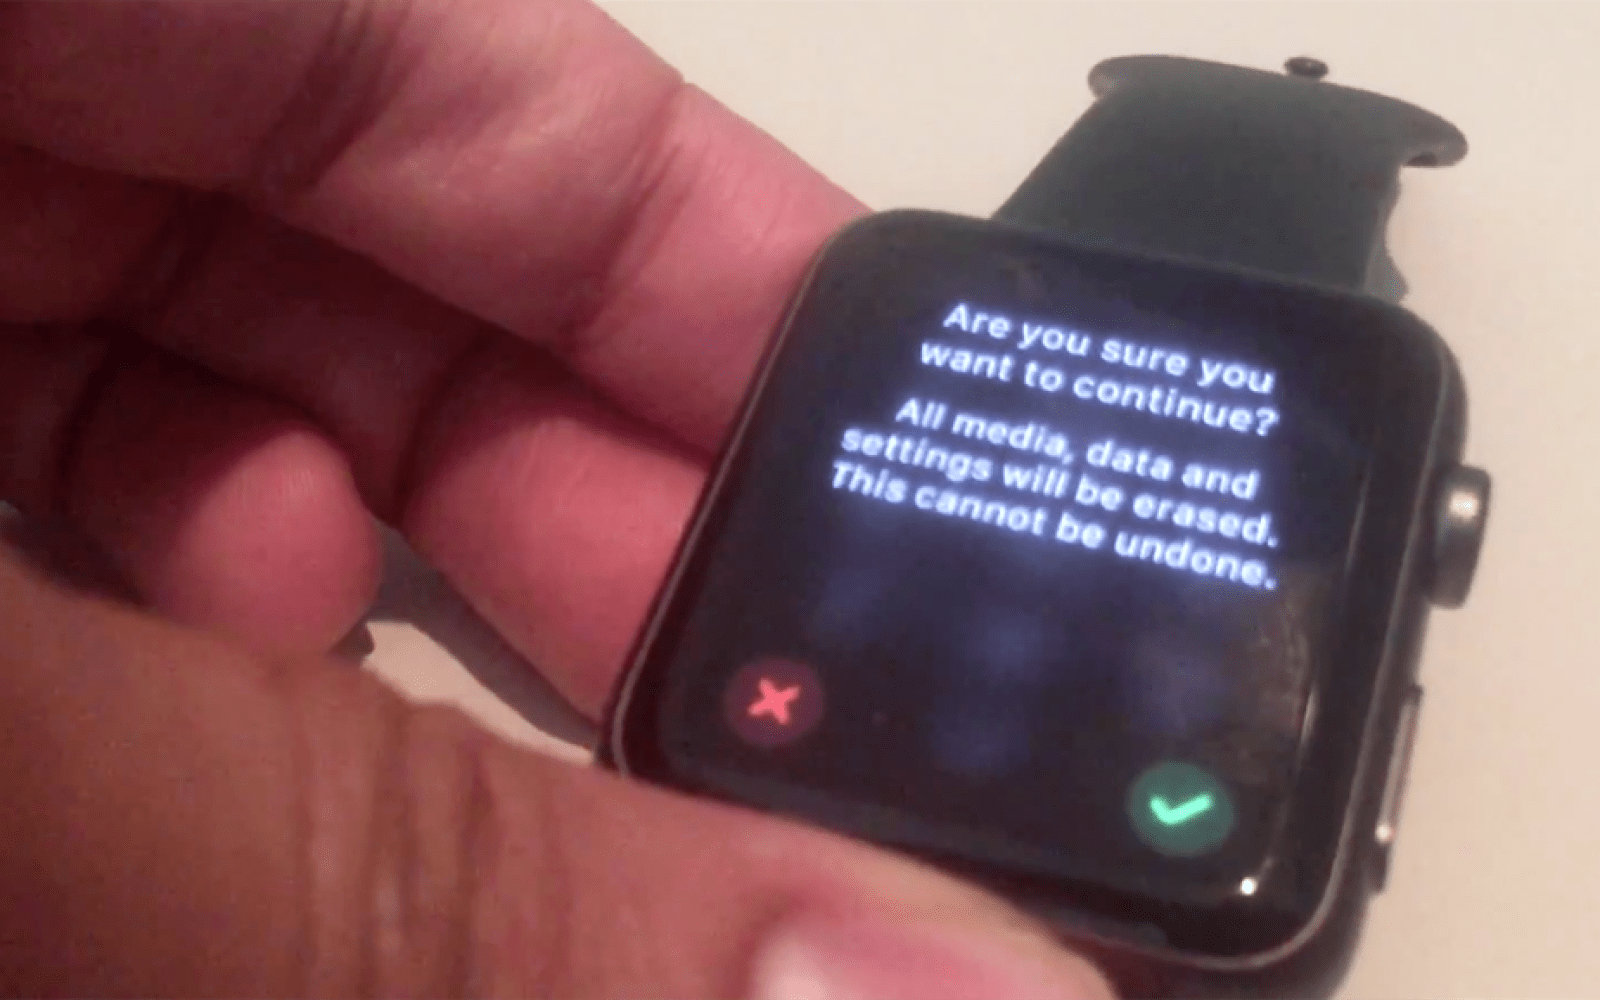 Thieves can bypass Apple Watch passcode to pair a stolen